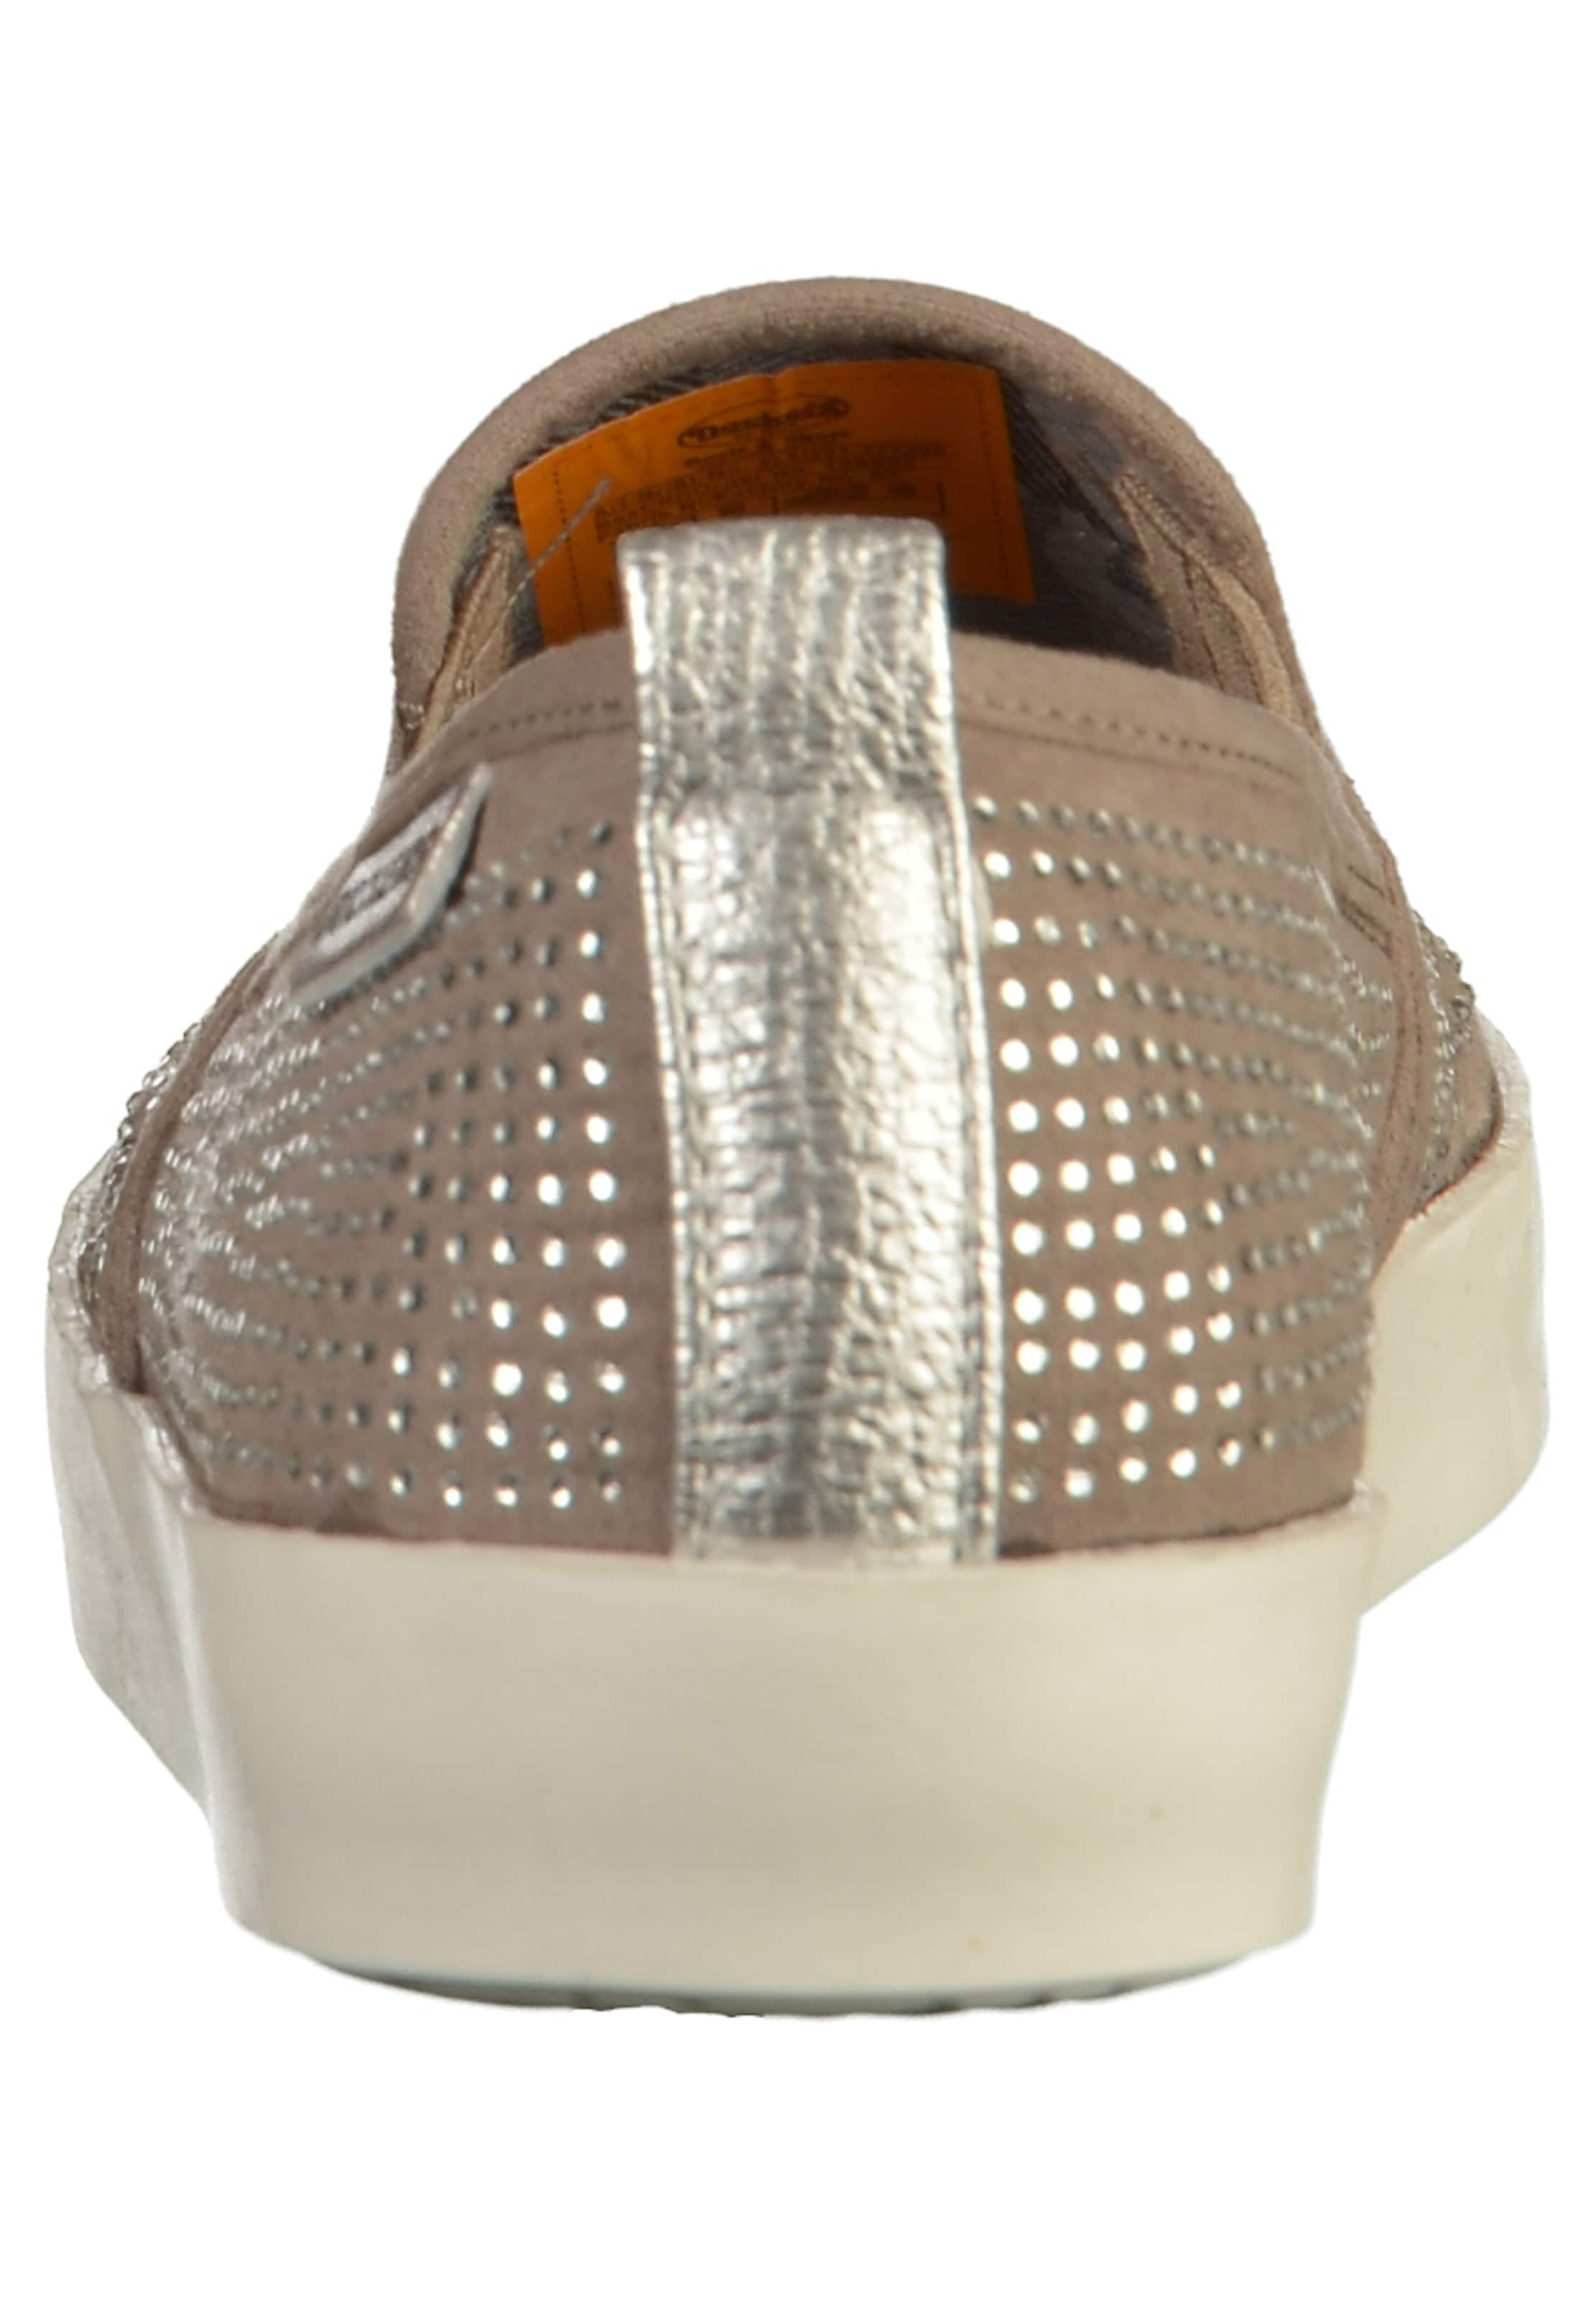 Taupe By Dockers In Slipper Gerli qLSMGpjUzV